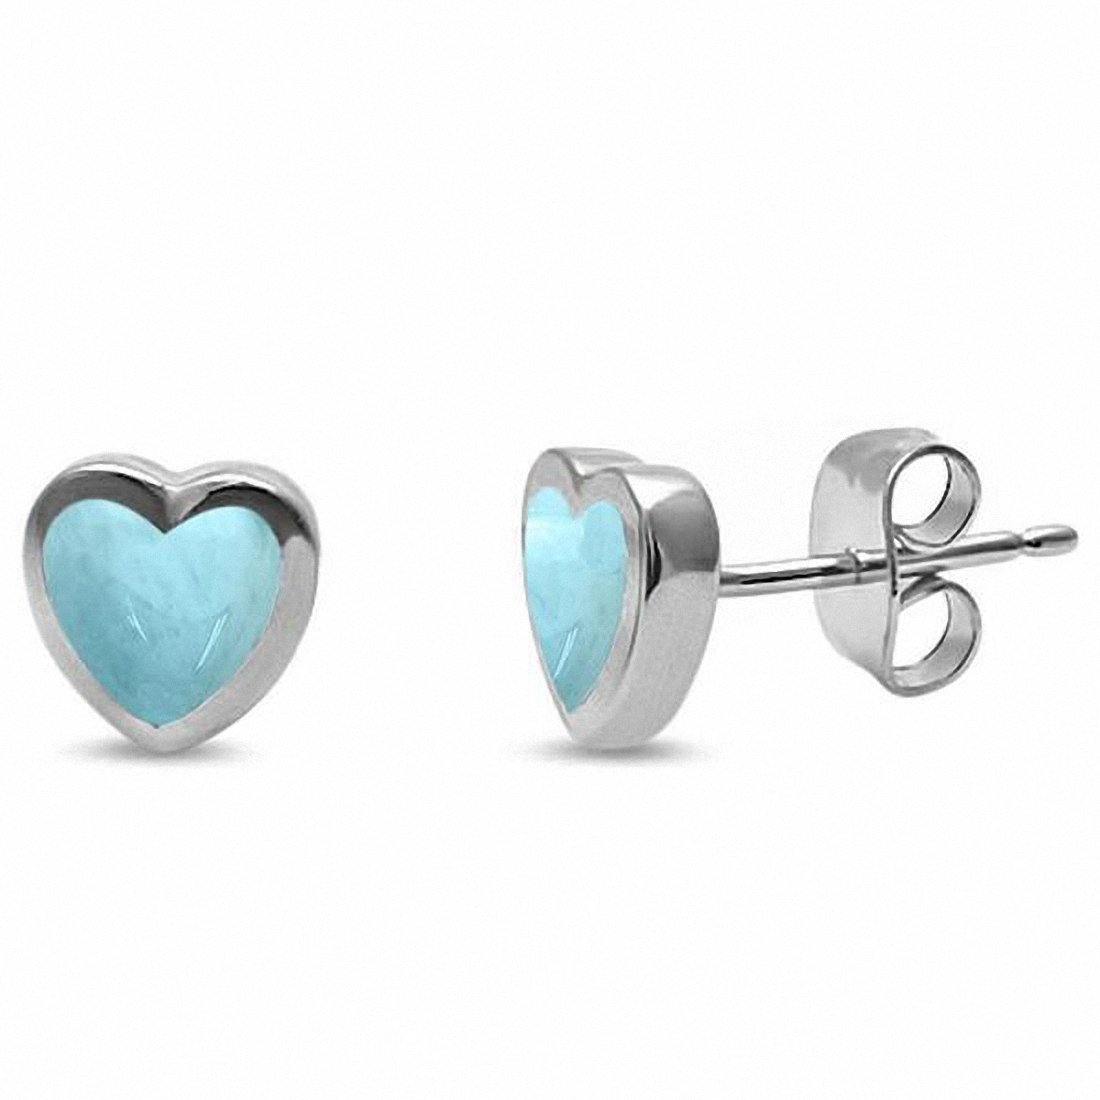 7mm Tiny Heart Stud Earrings Created Blue Opal 925 Sterling Silver Choose Color